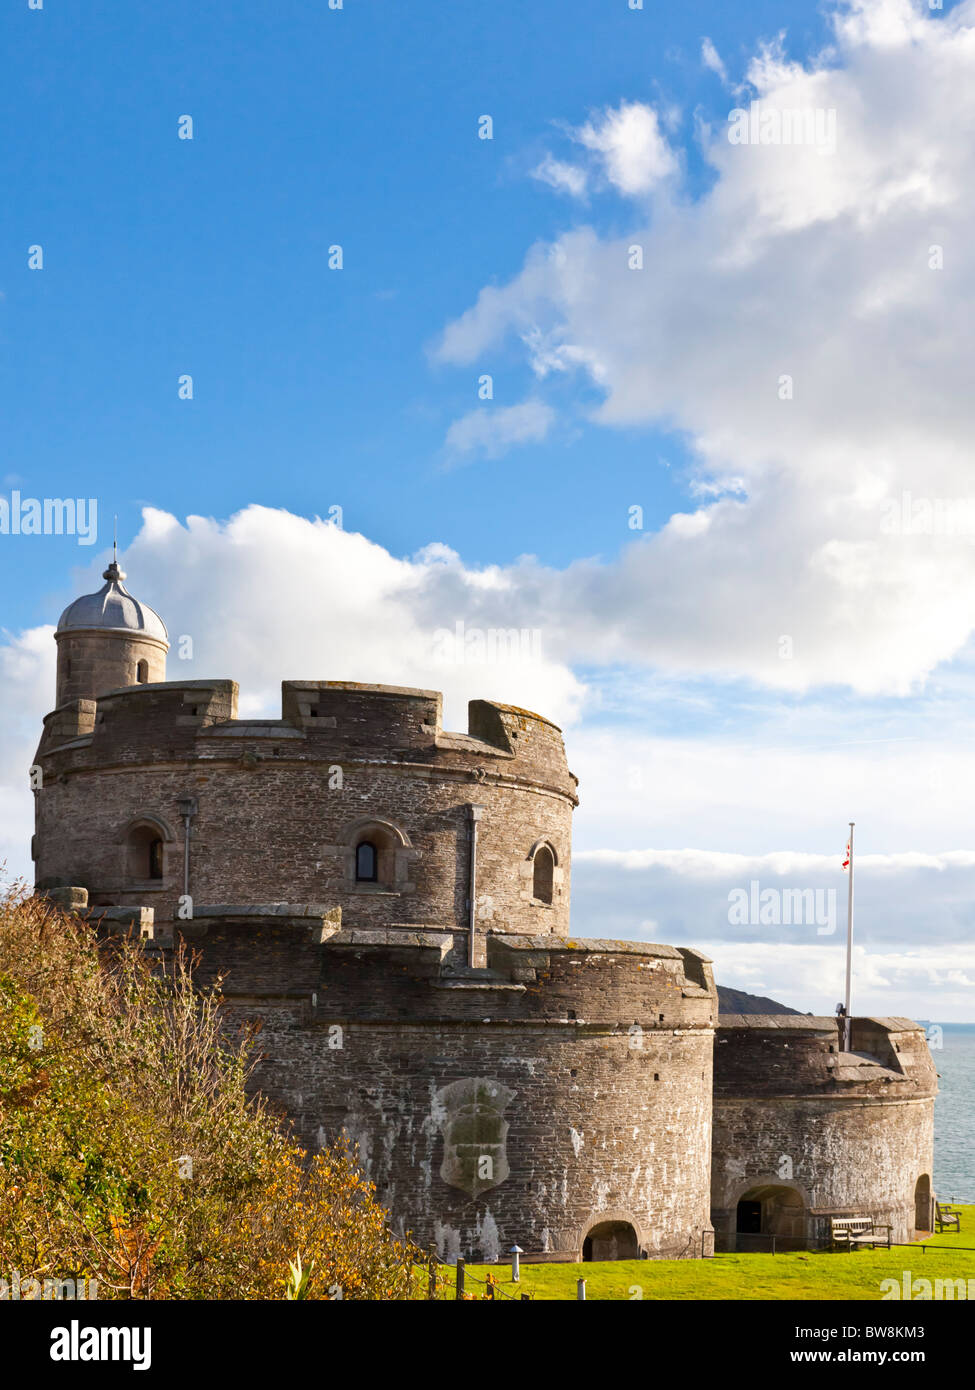 St Mawes Castle Cornwall England - Stock Image